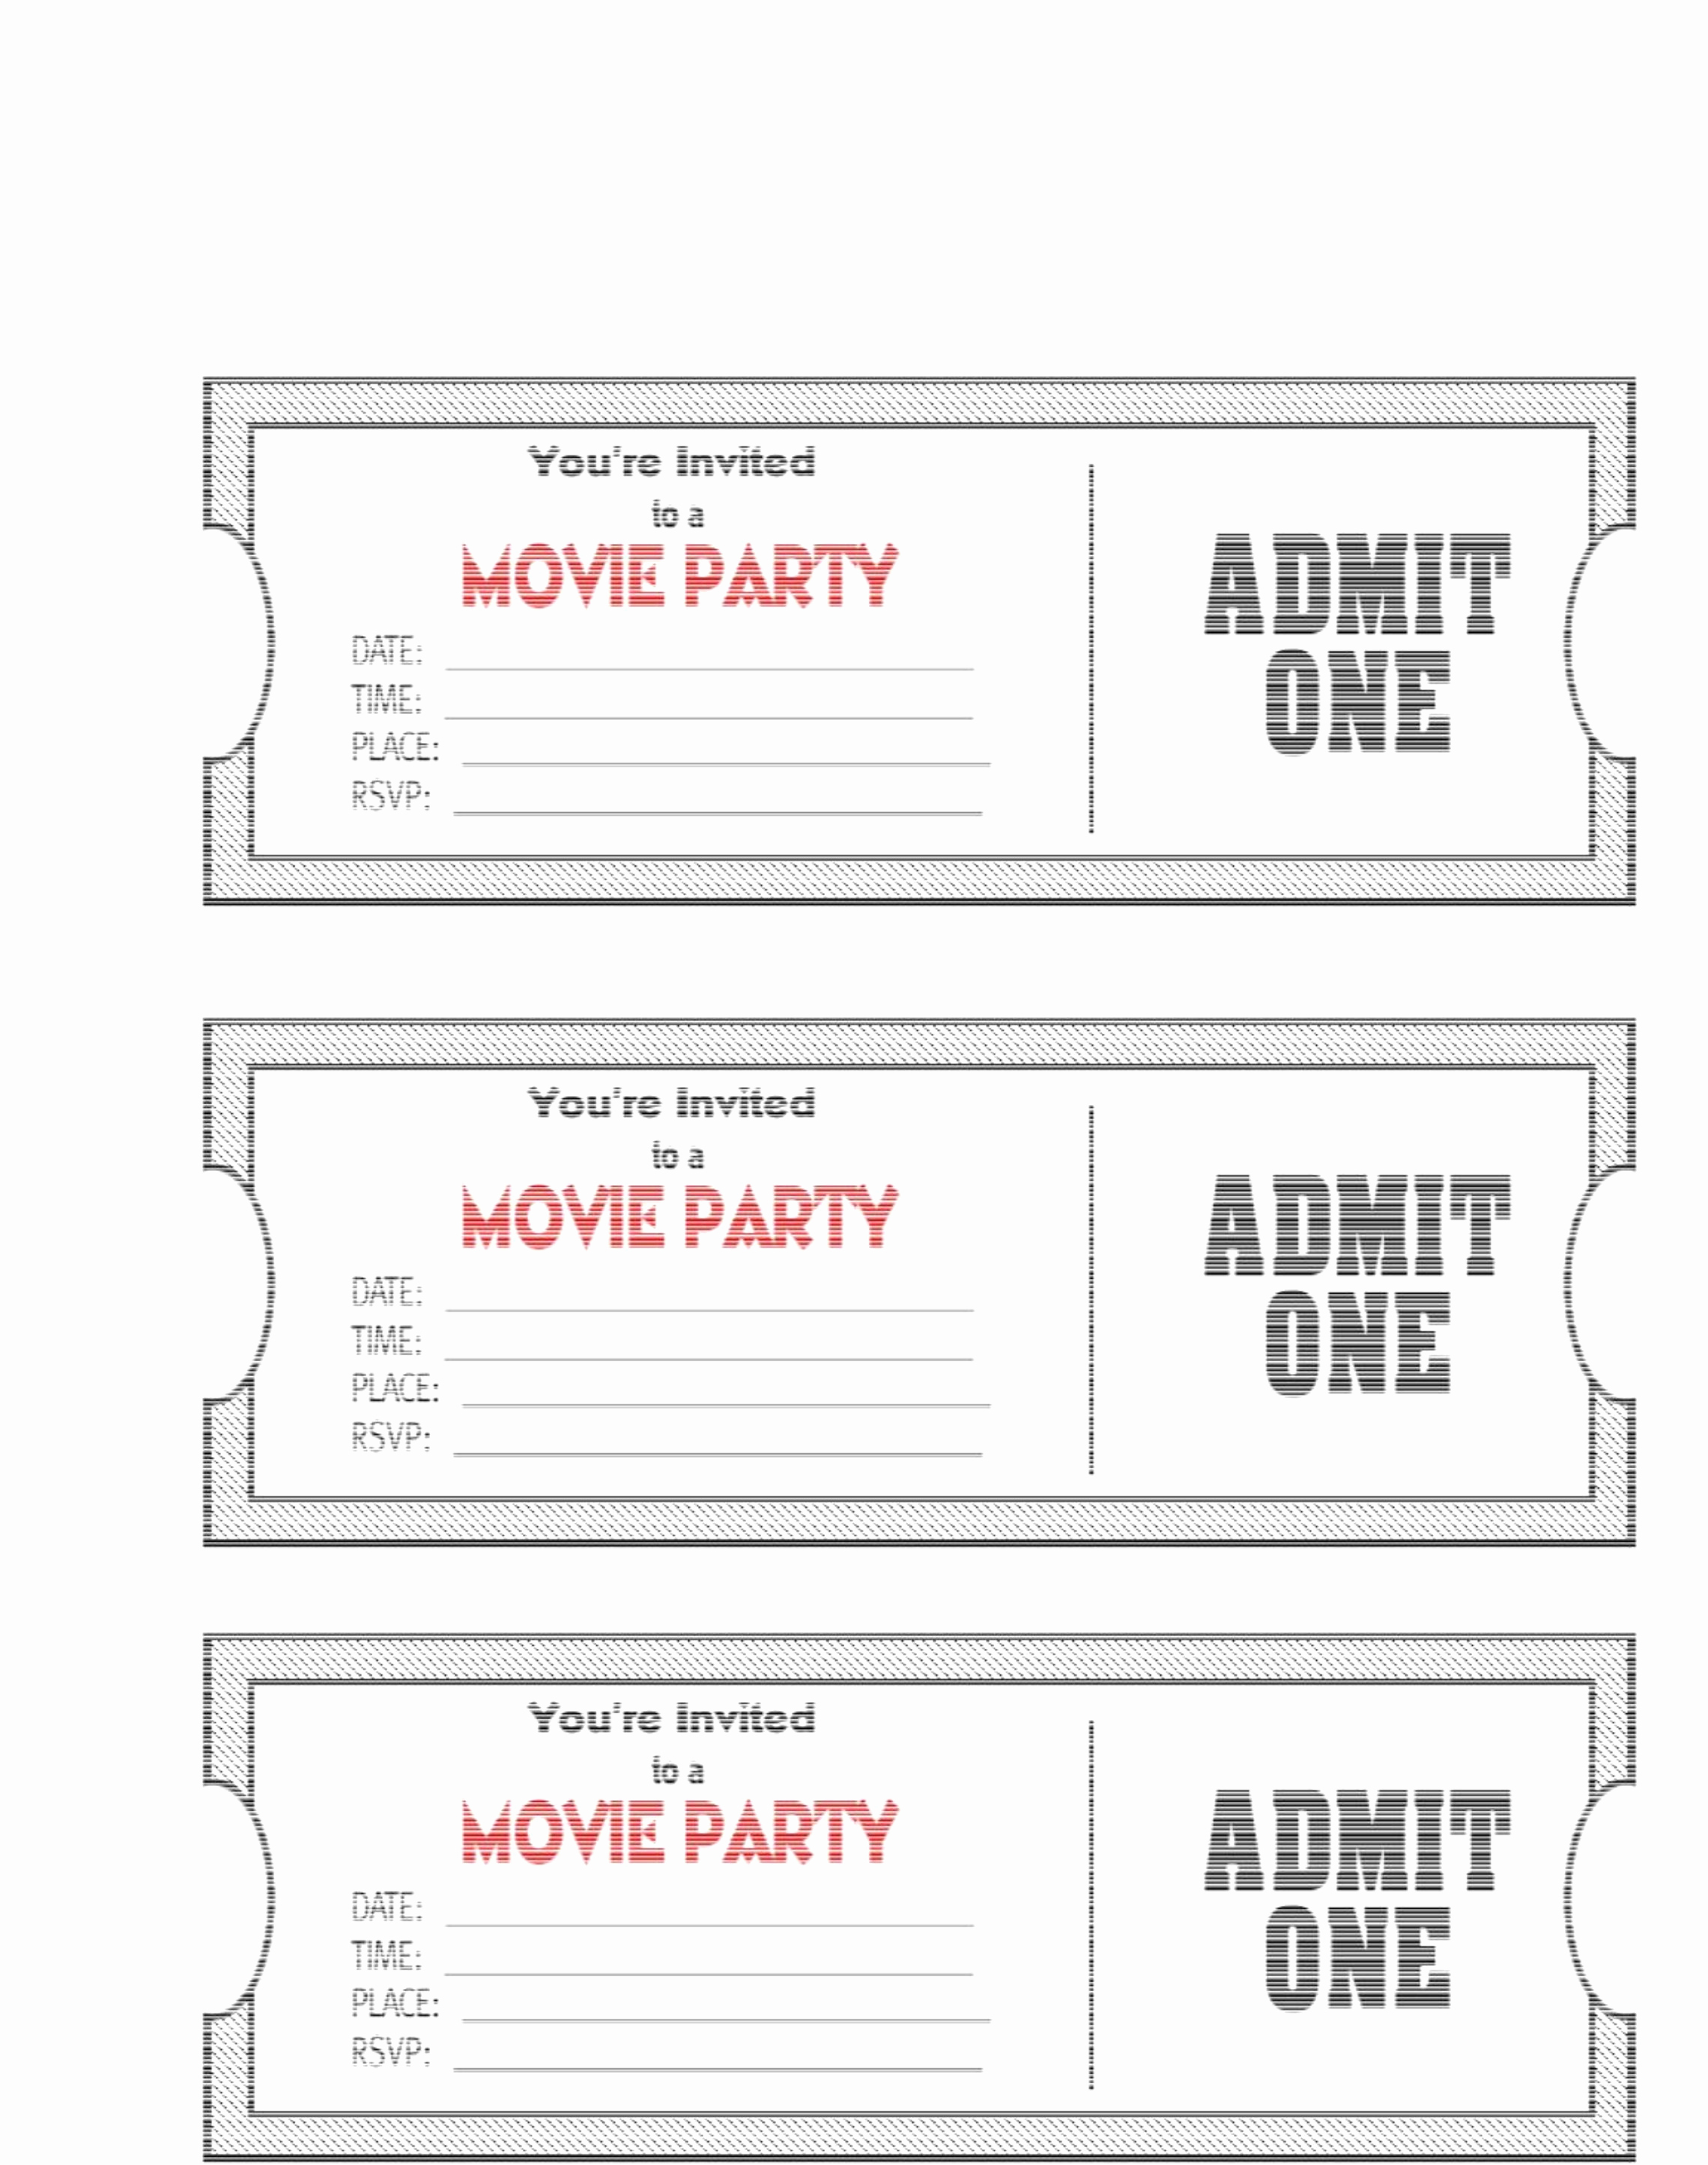 Ticket Invitation Template Free Luxury Free Printable Movie Ticket Template – 40 Free Editable